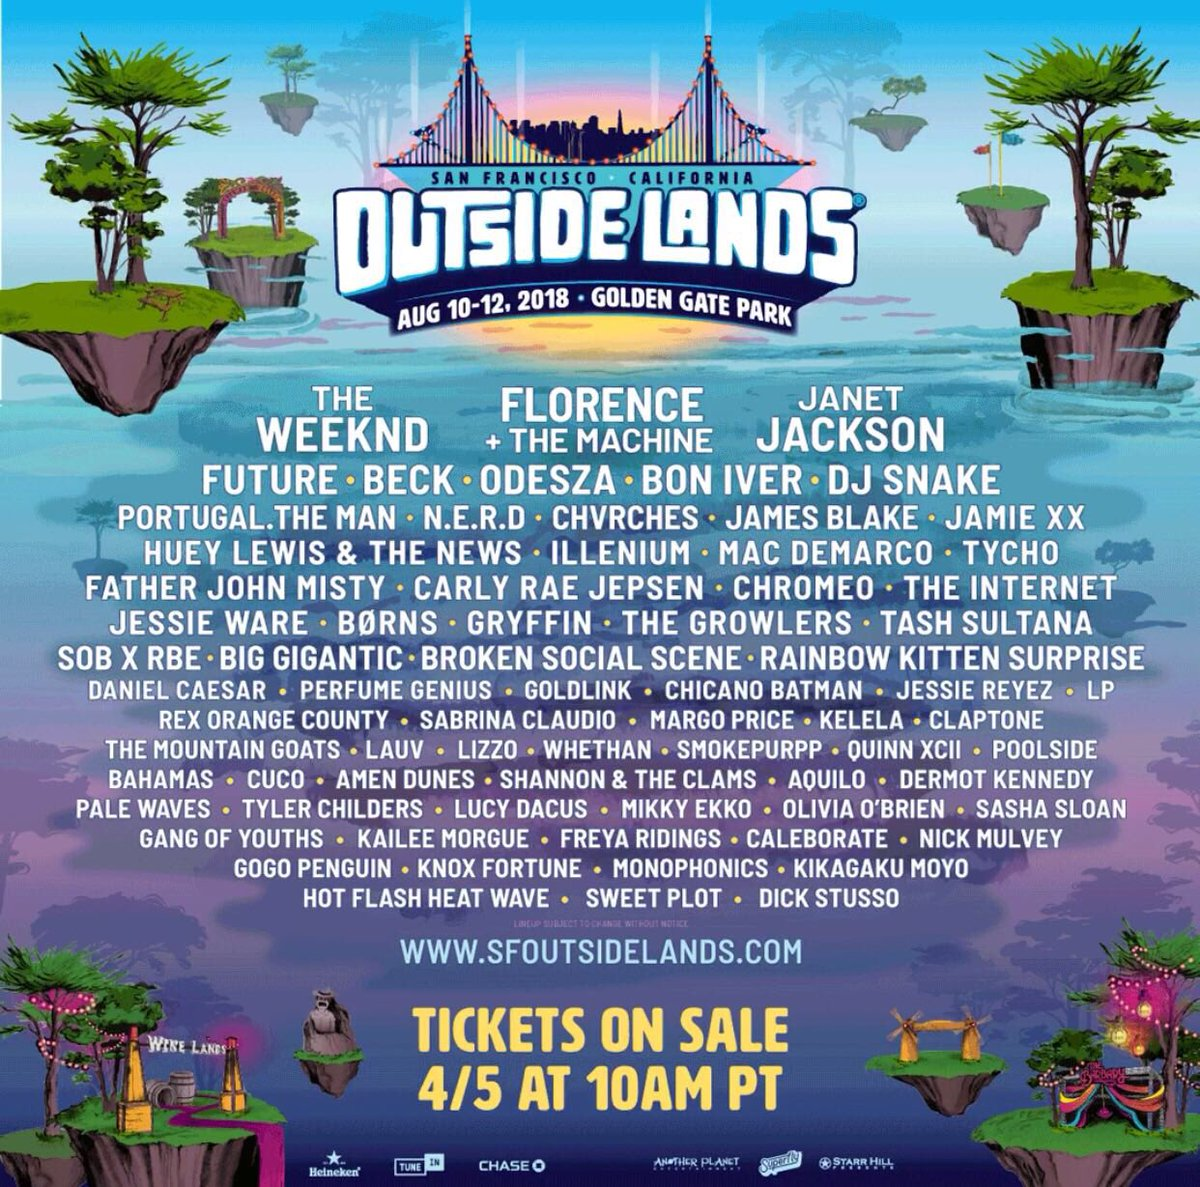 California can't wait to play @sfoutsidelands this summer